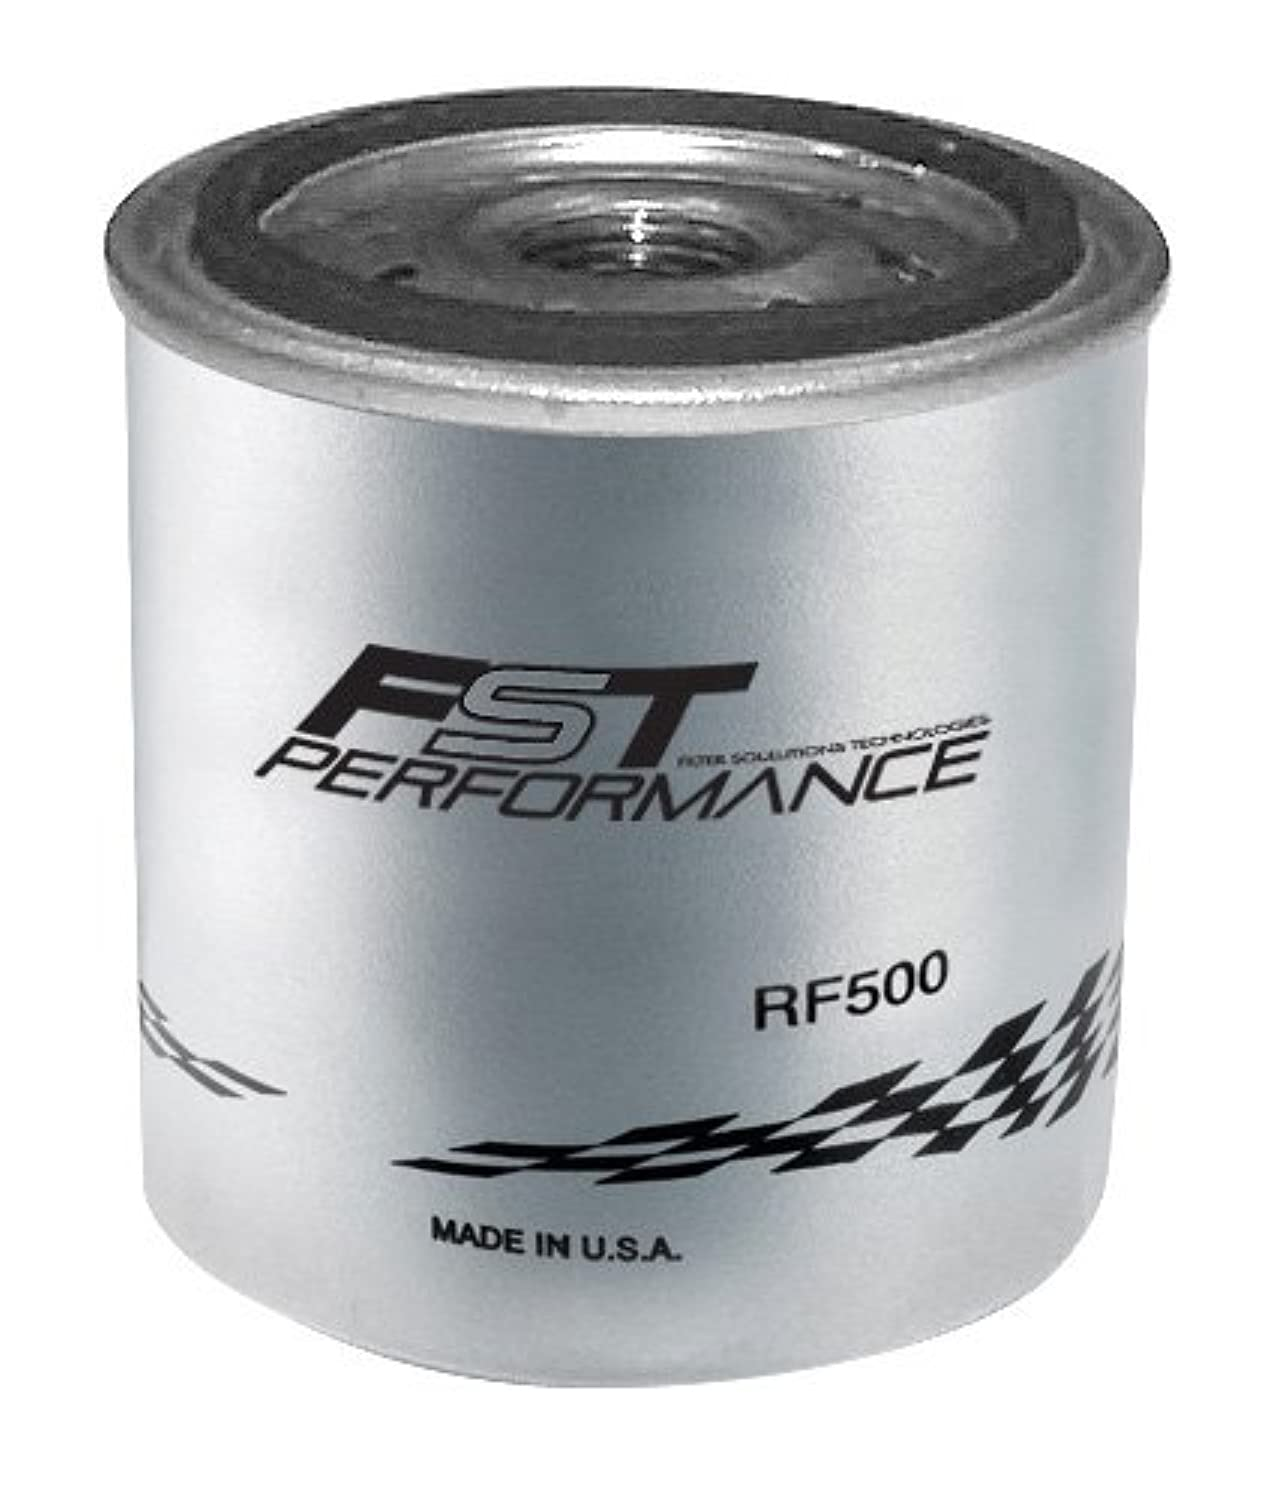 FST Performance RF500 Silver 4 Micron Rating Replacement Fuel/Water Separator Filter for RPM300/350